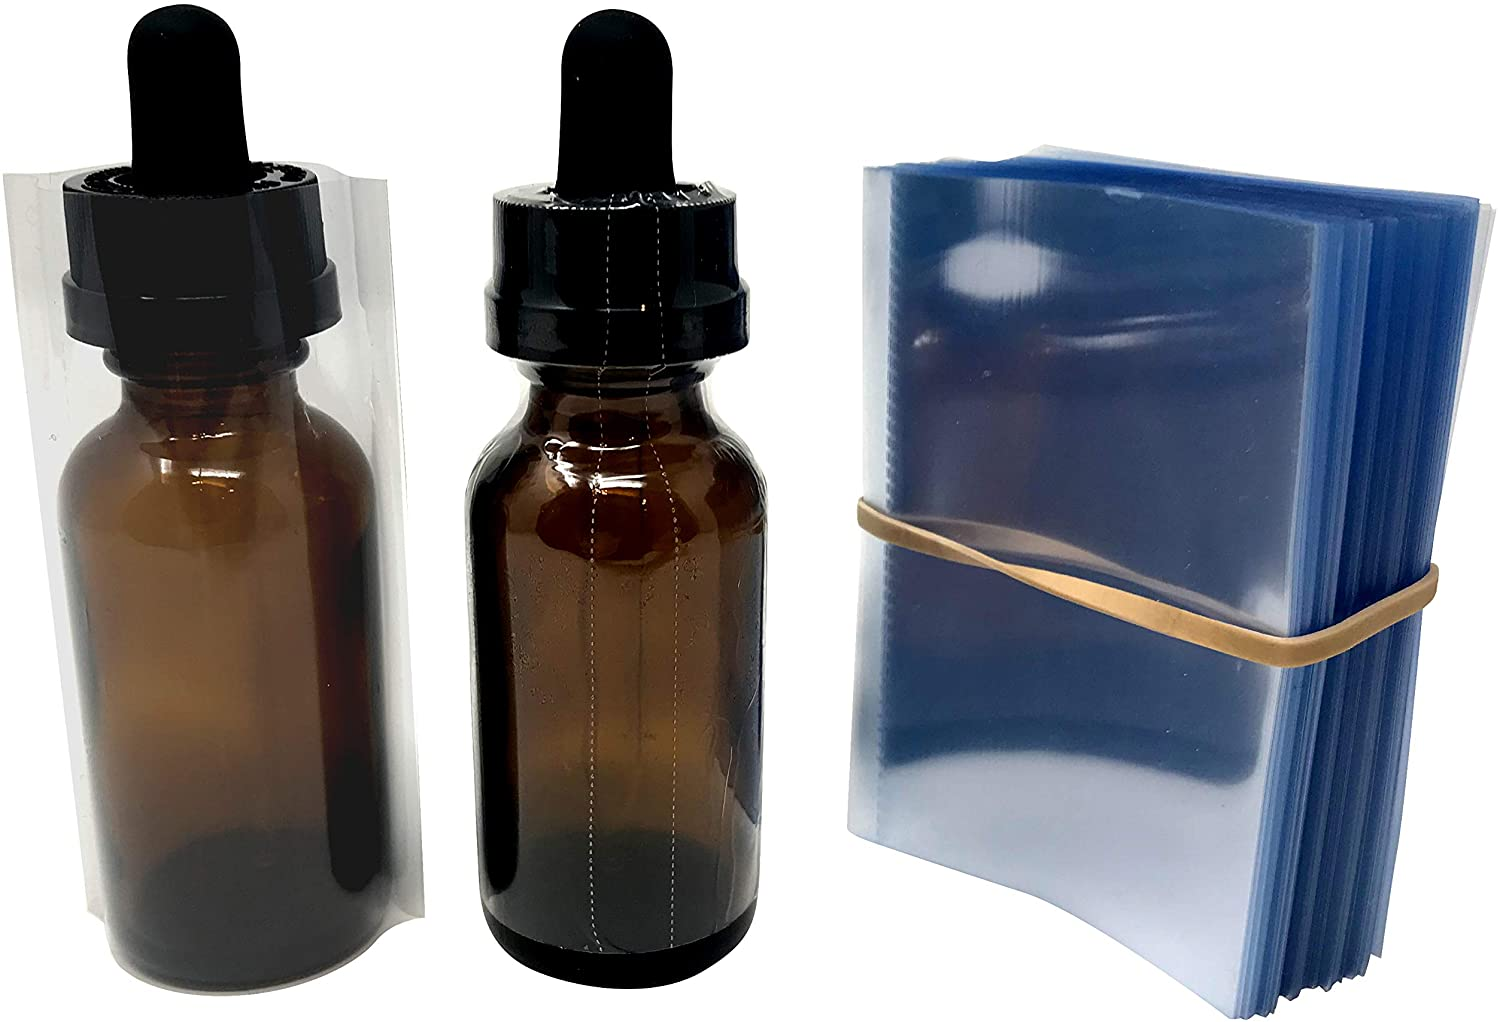 Clear Perforated Shrink Sleeve for 1 Ounce (30 mL) Dropper Bottles (250 Pack)